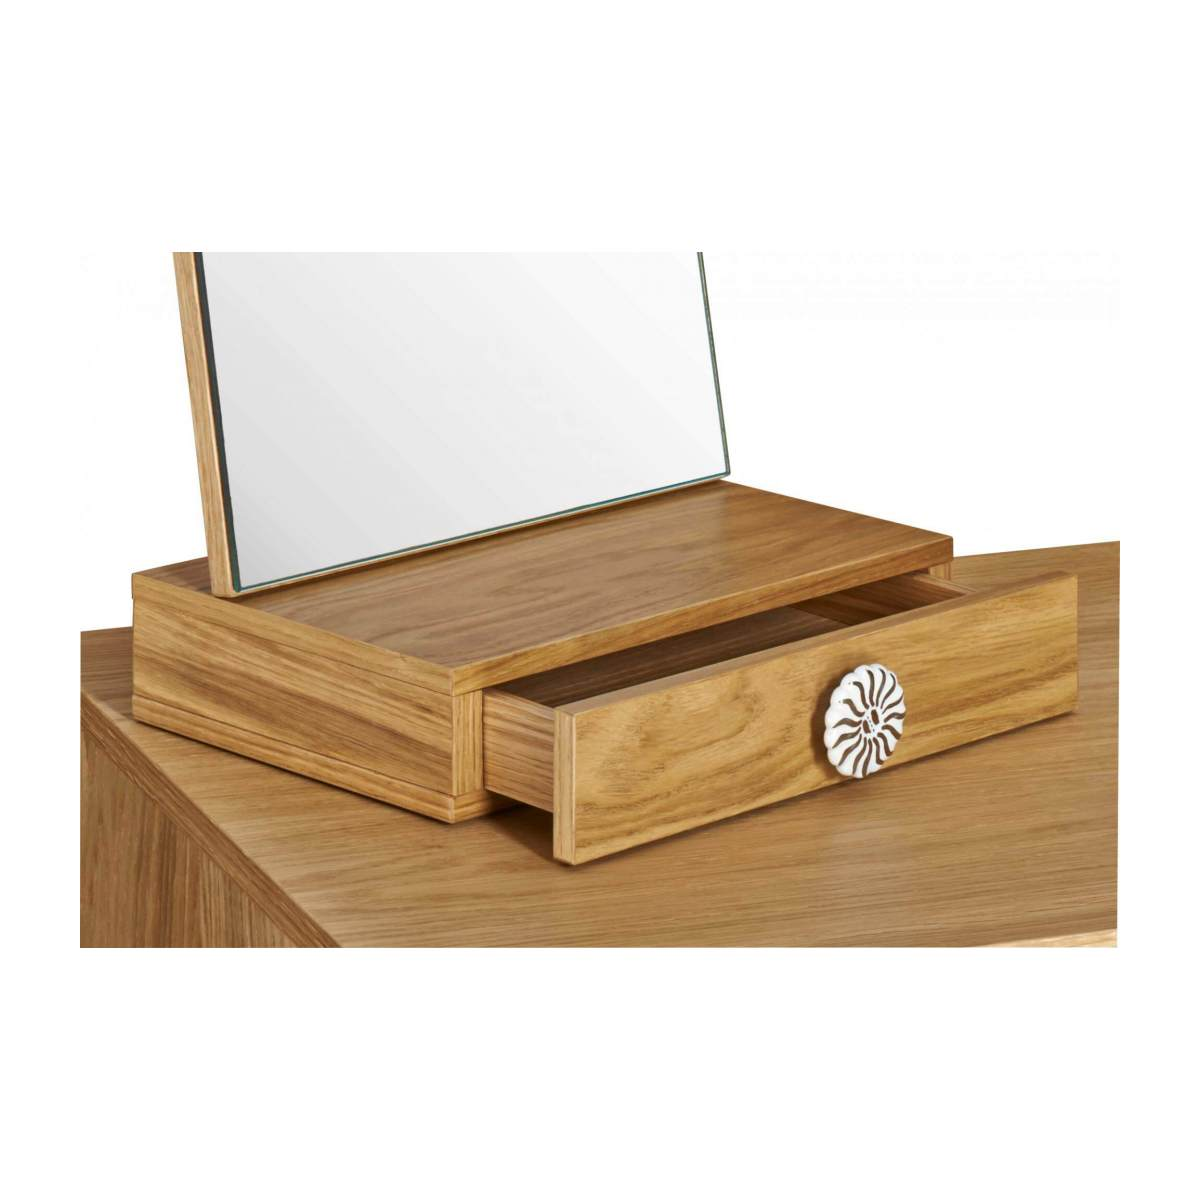 Mirrored 5 drawer dressing table n°8